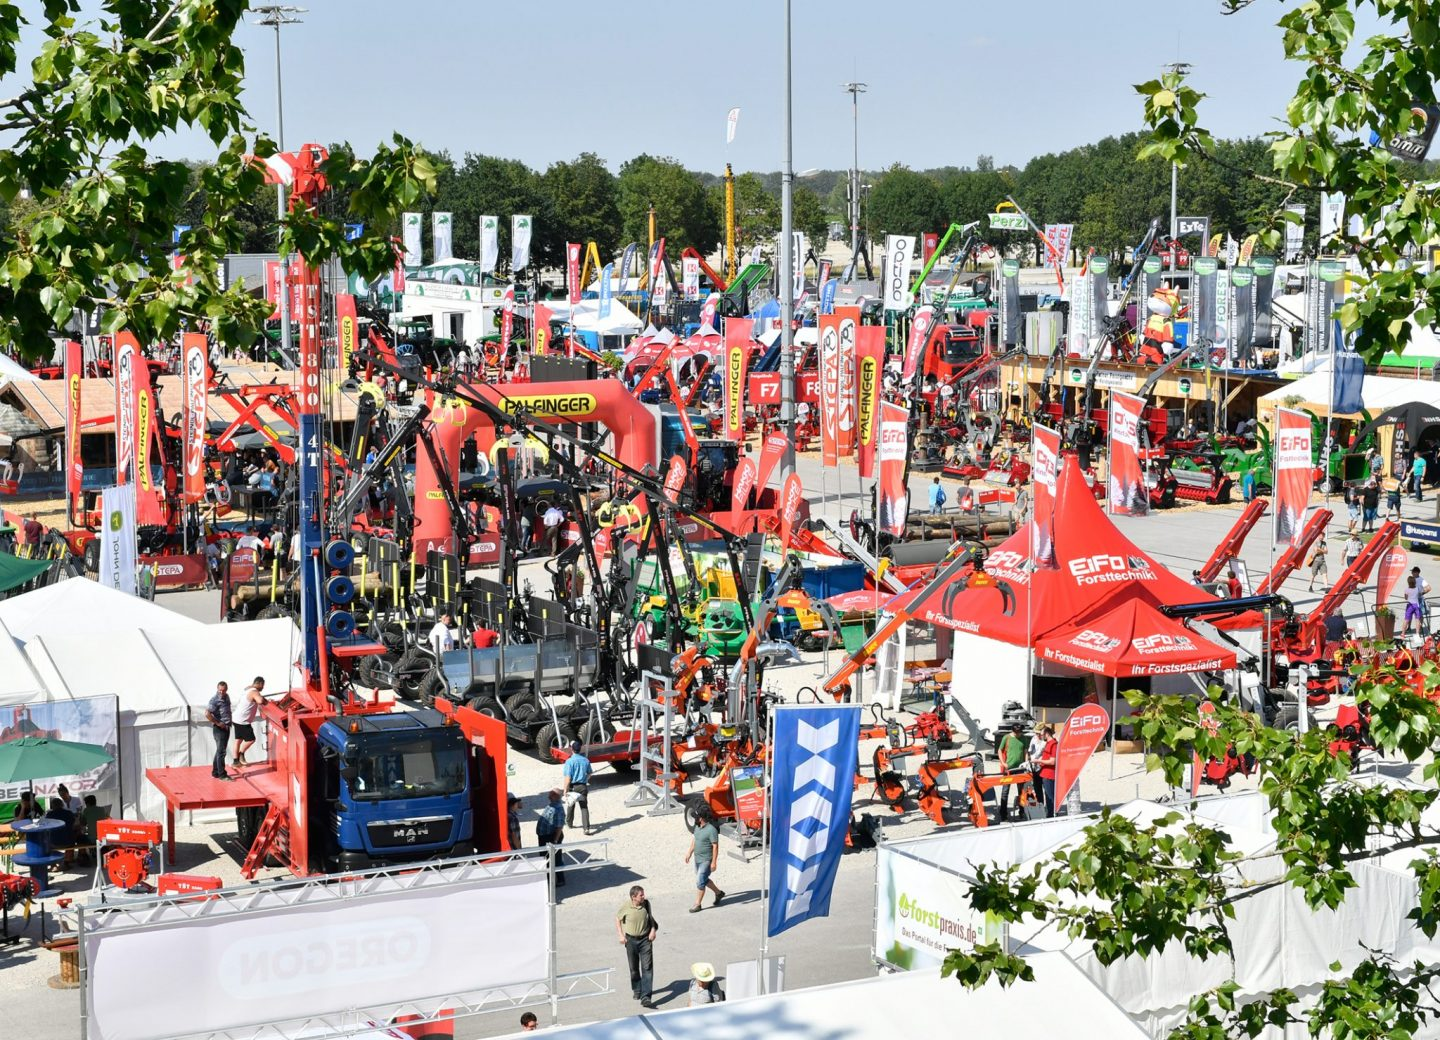 Finally – some good news about forestry fairs!